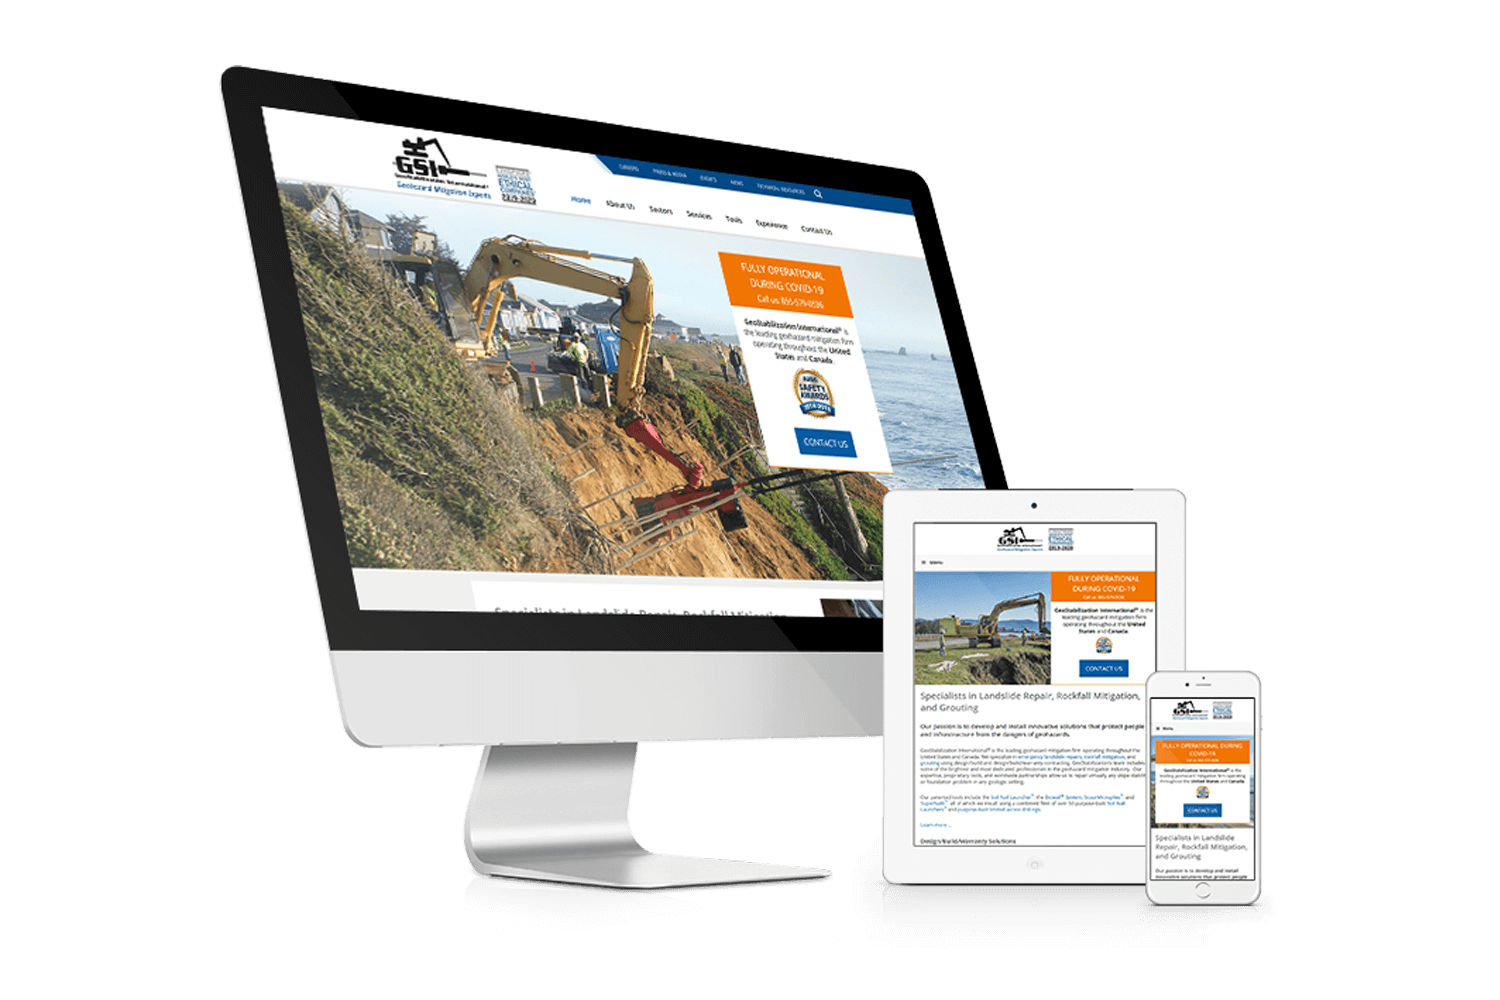 GeoStabilization International Website Design